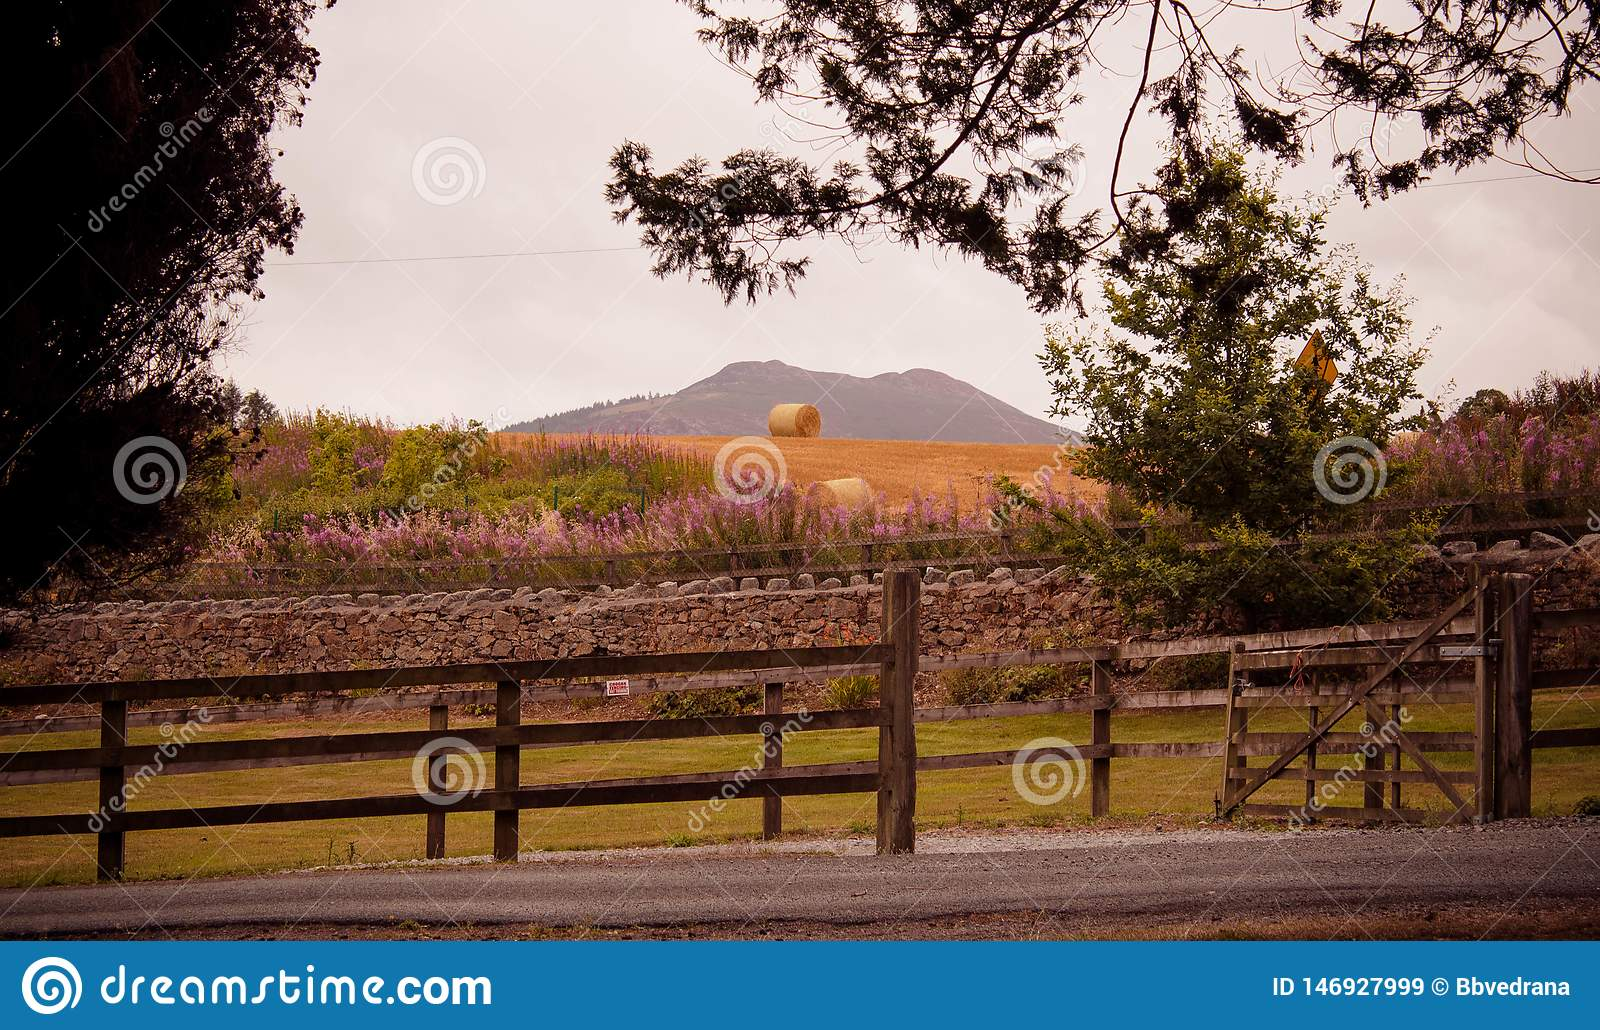 Country hill with wooden fence and bales of hay